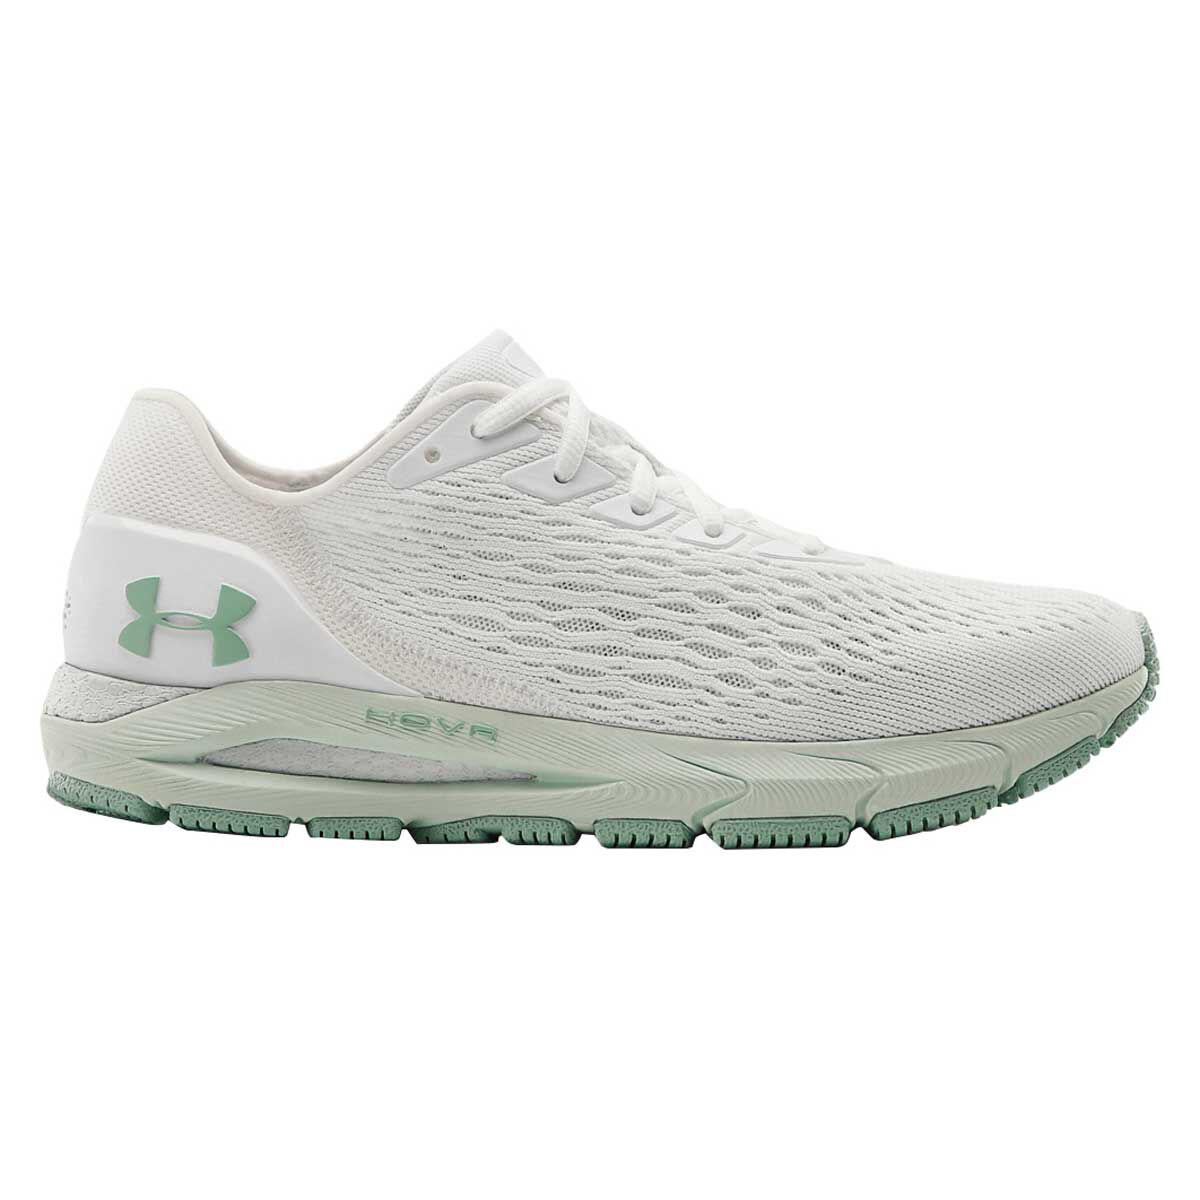 Under Armour HOVR Sonic 3 Womens